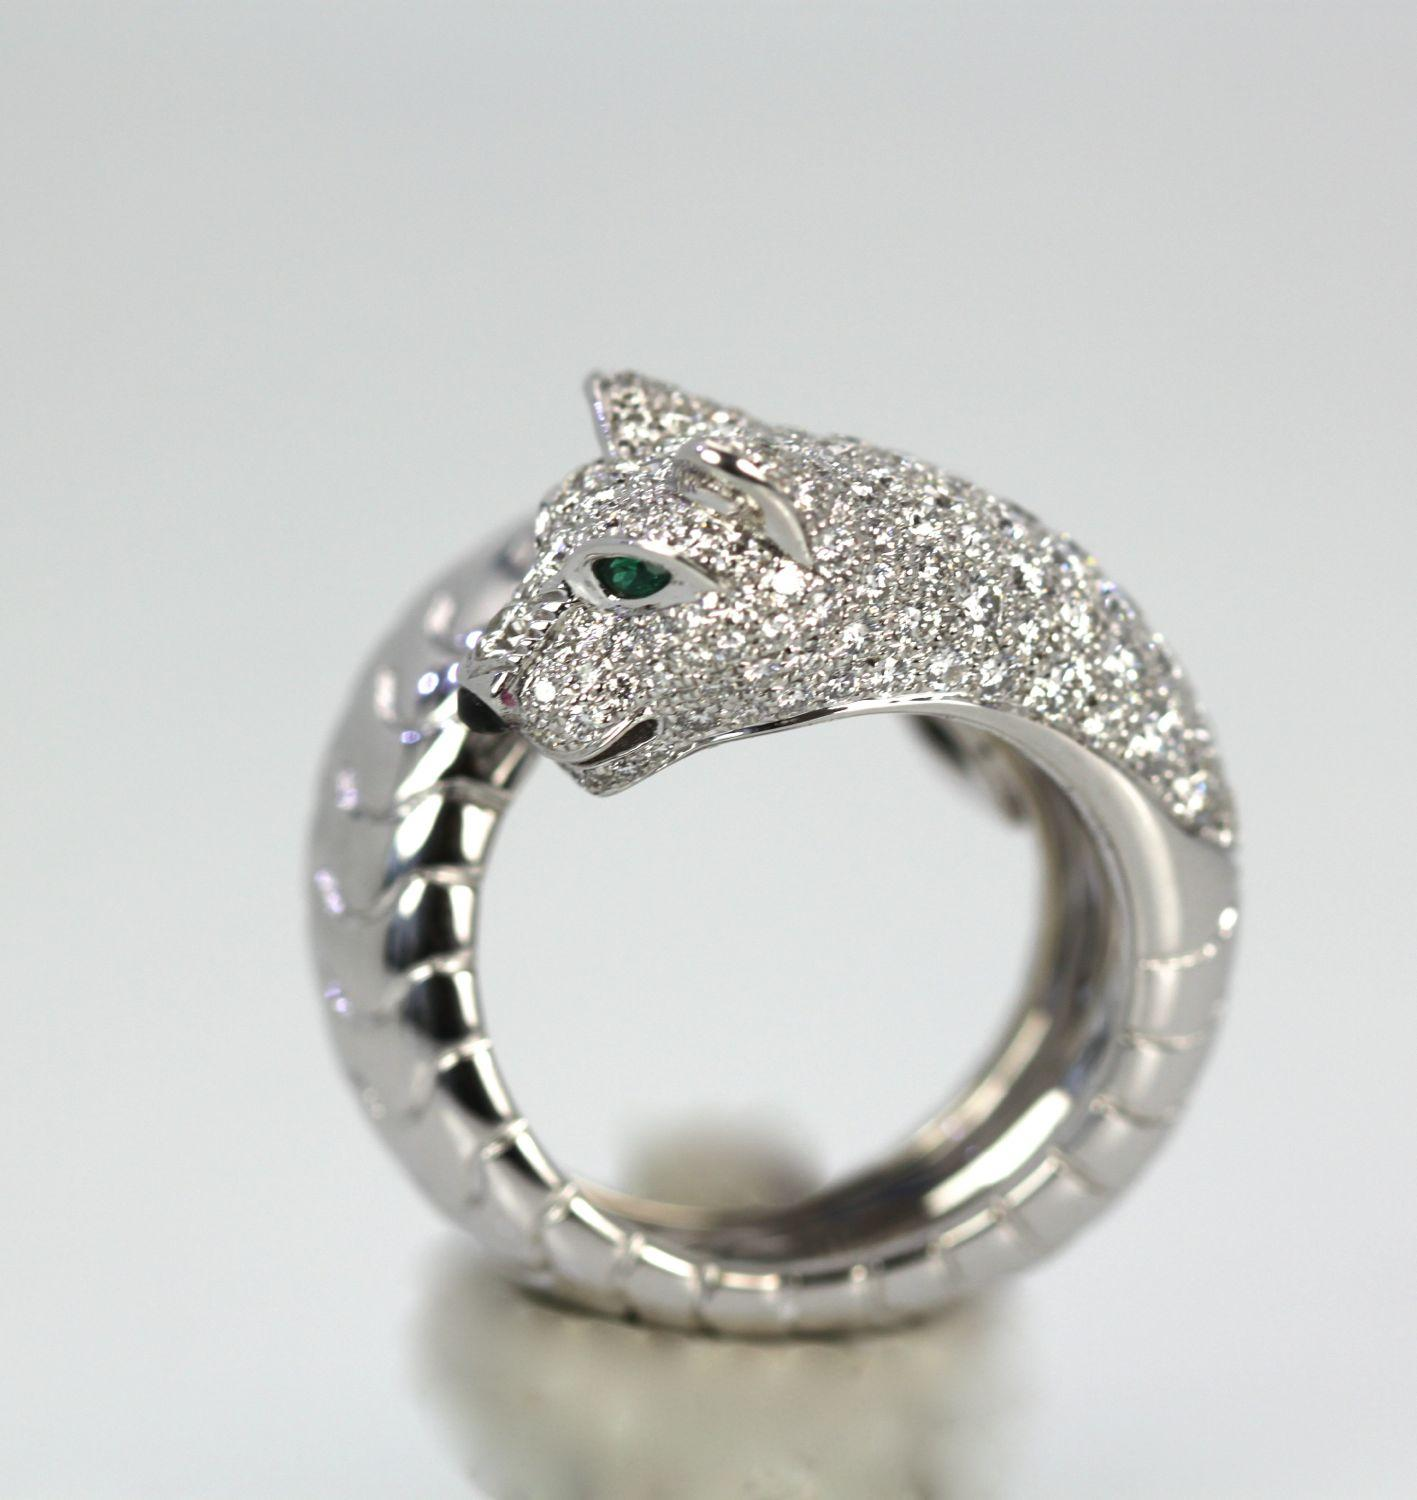 Cartier Panthere Ring With Diamonds From Cris Notti On Rubylux